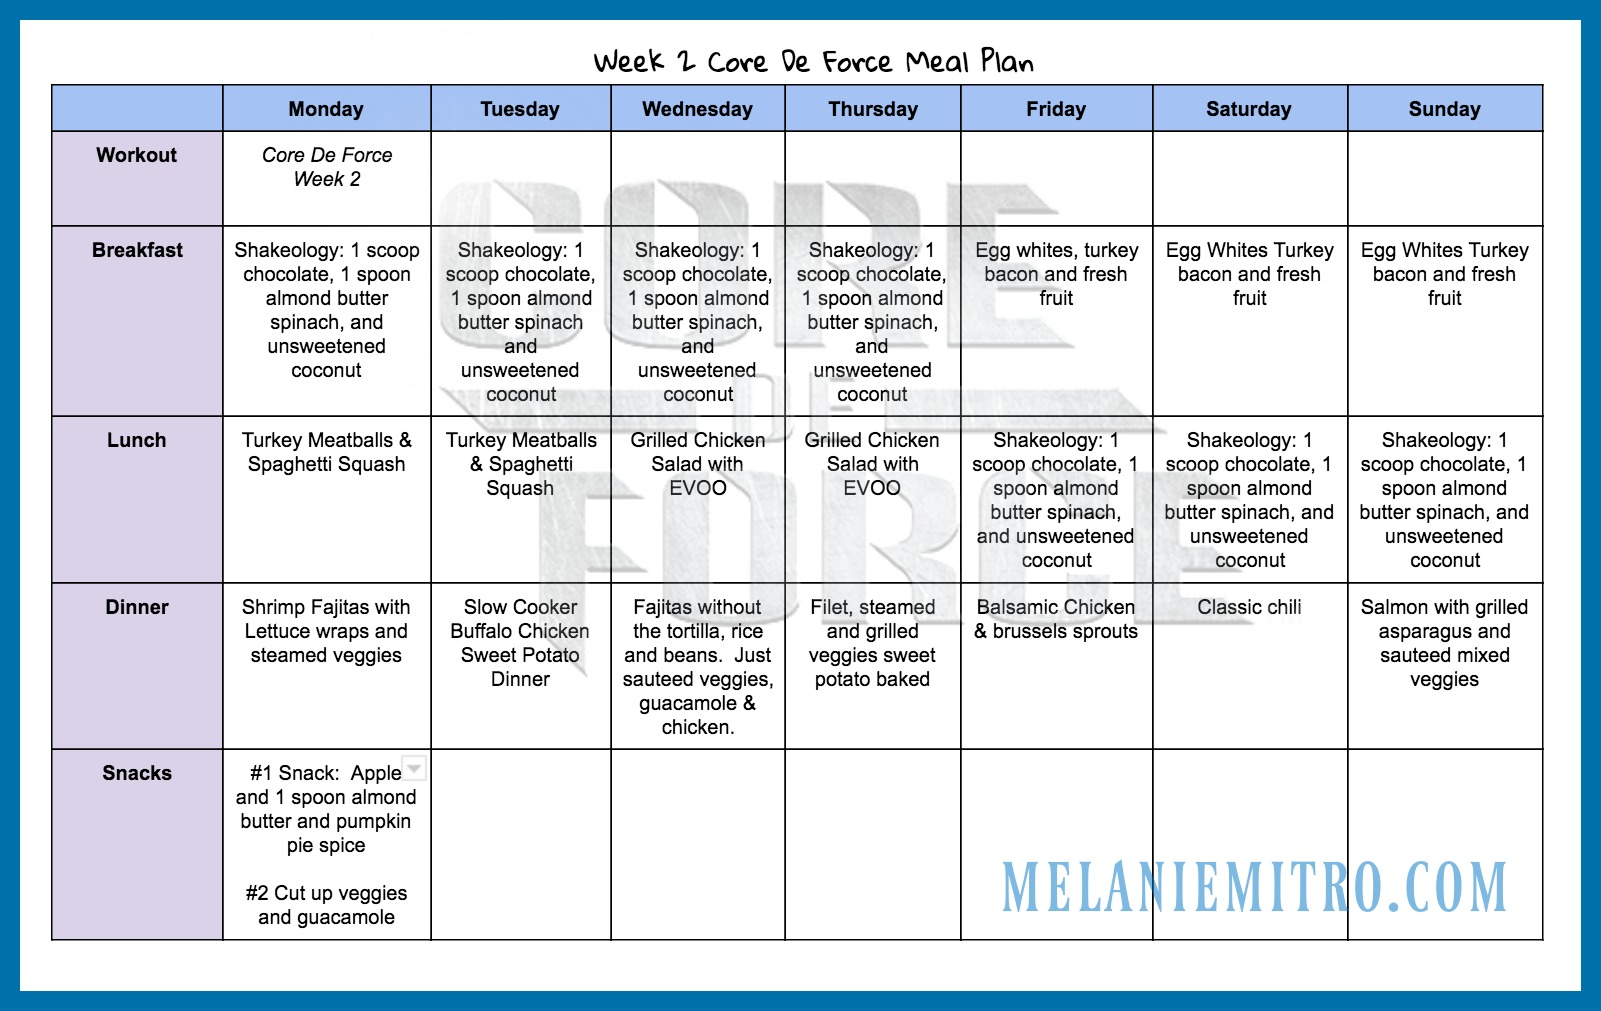 Core De Force Meal Plan, Melanie Mitro, Week 2